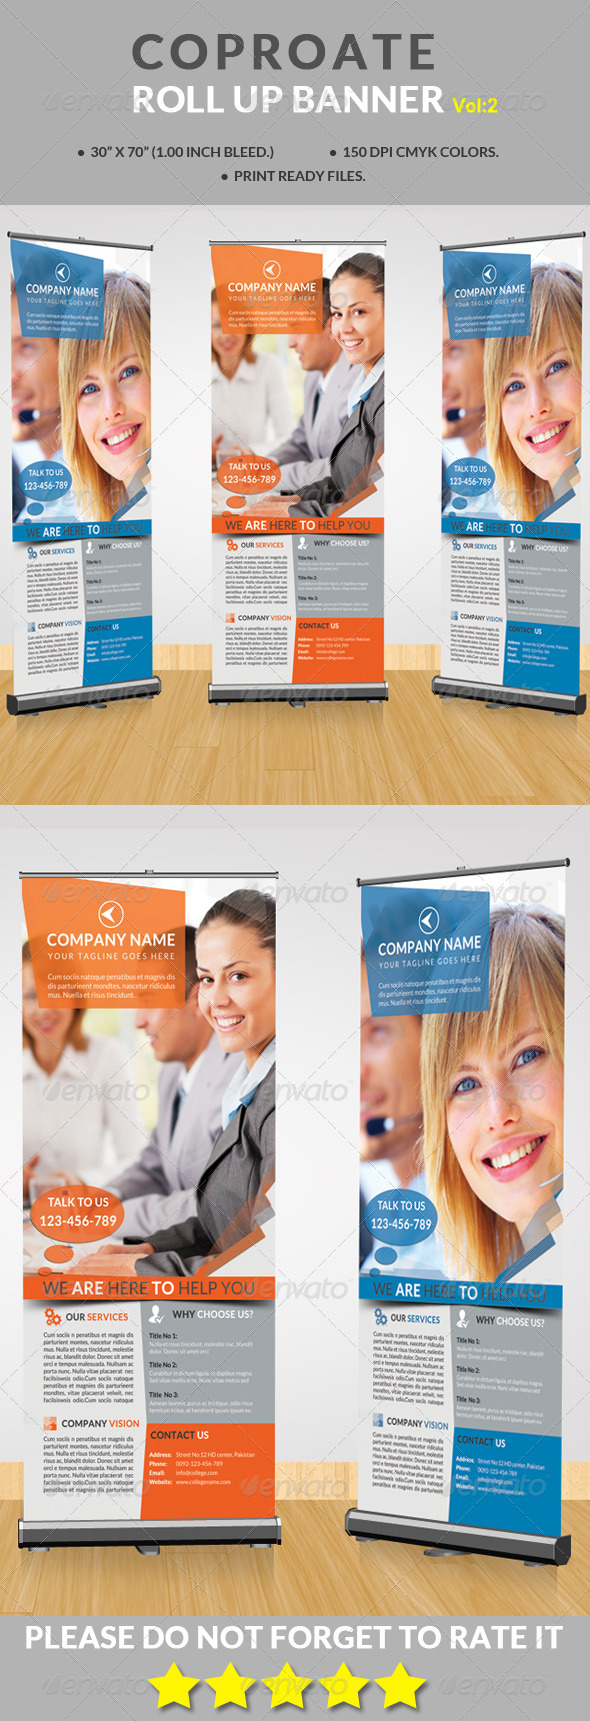 GraphicRiver Corporate Rollup Banner Vol 2 8606751